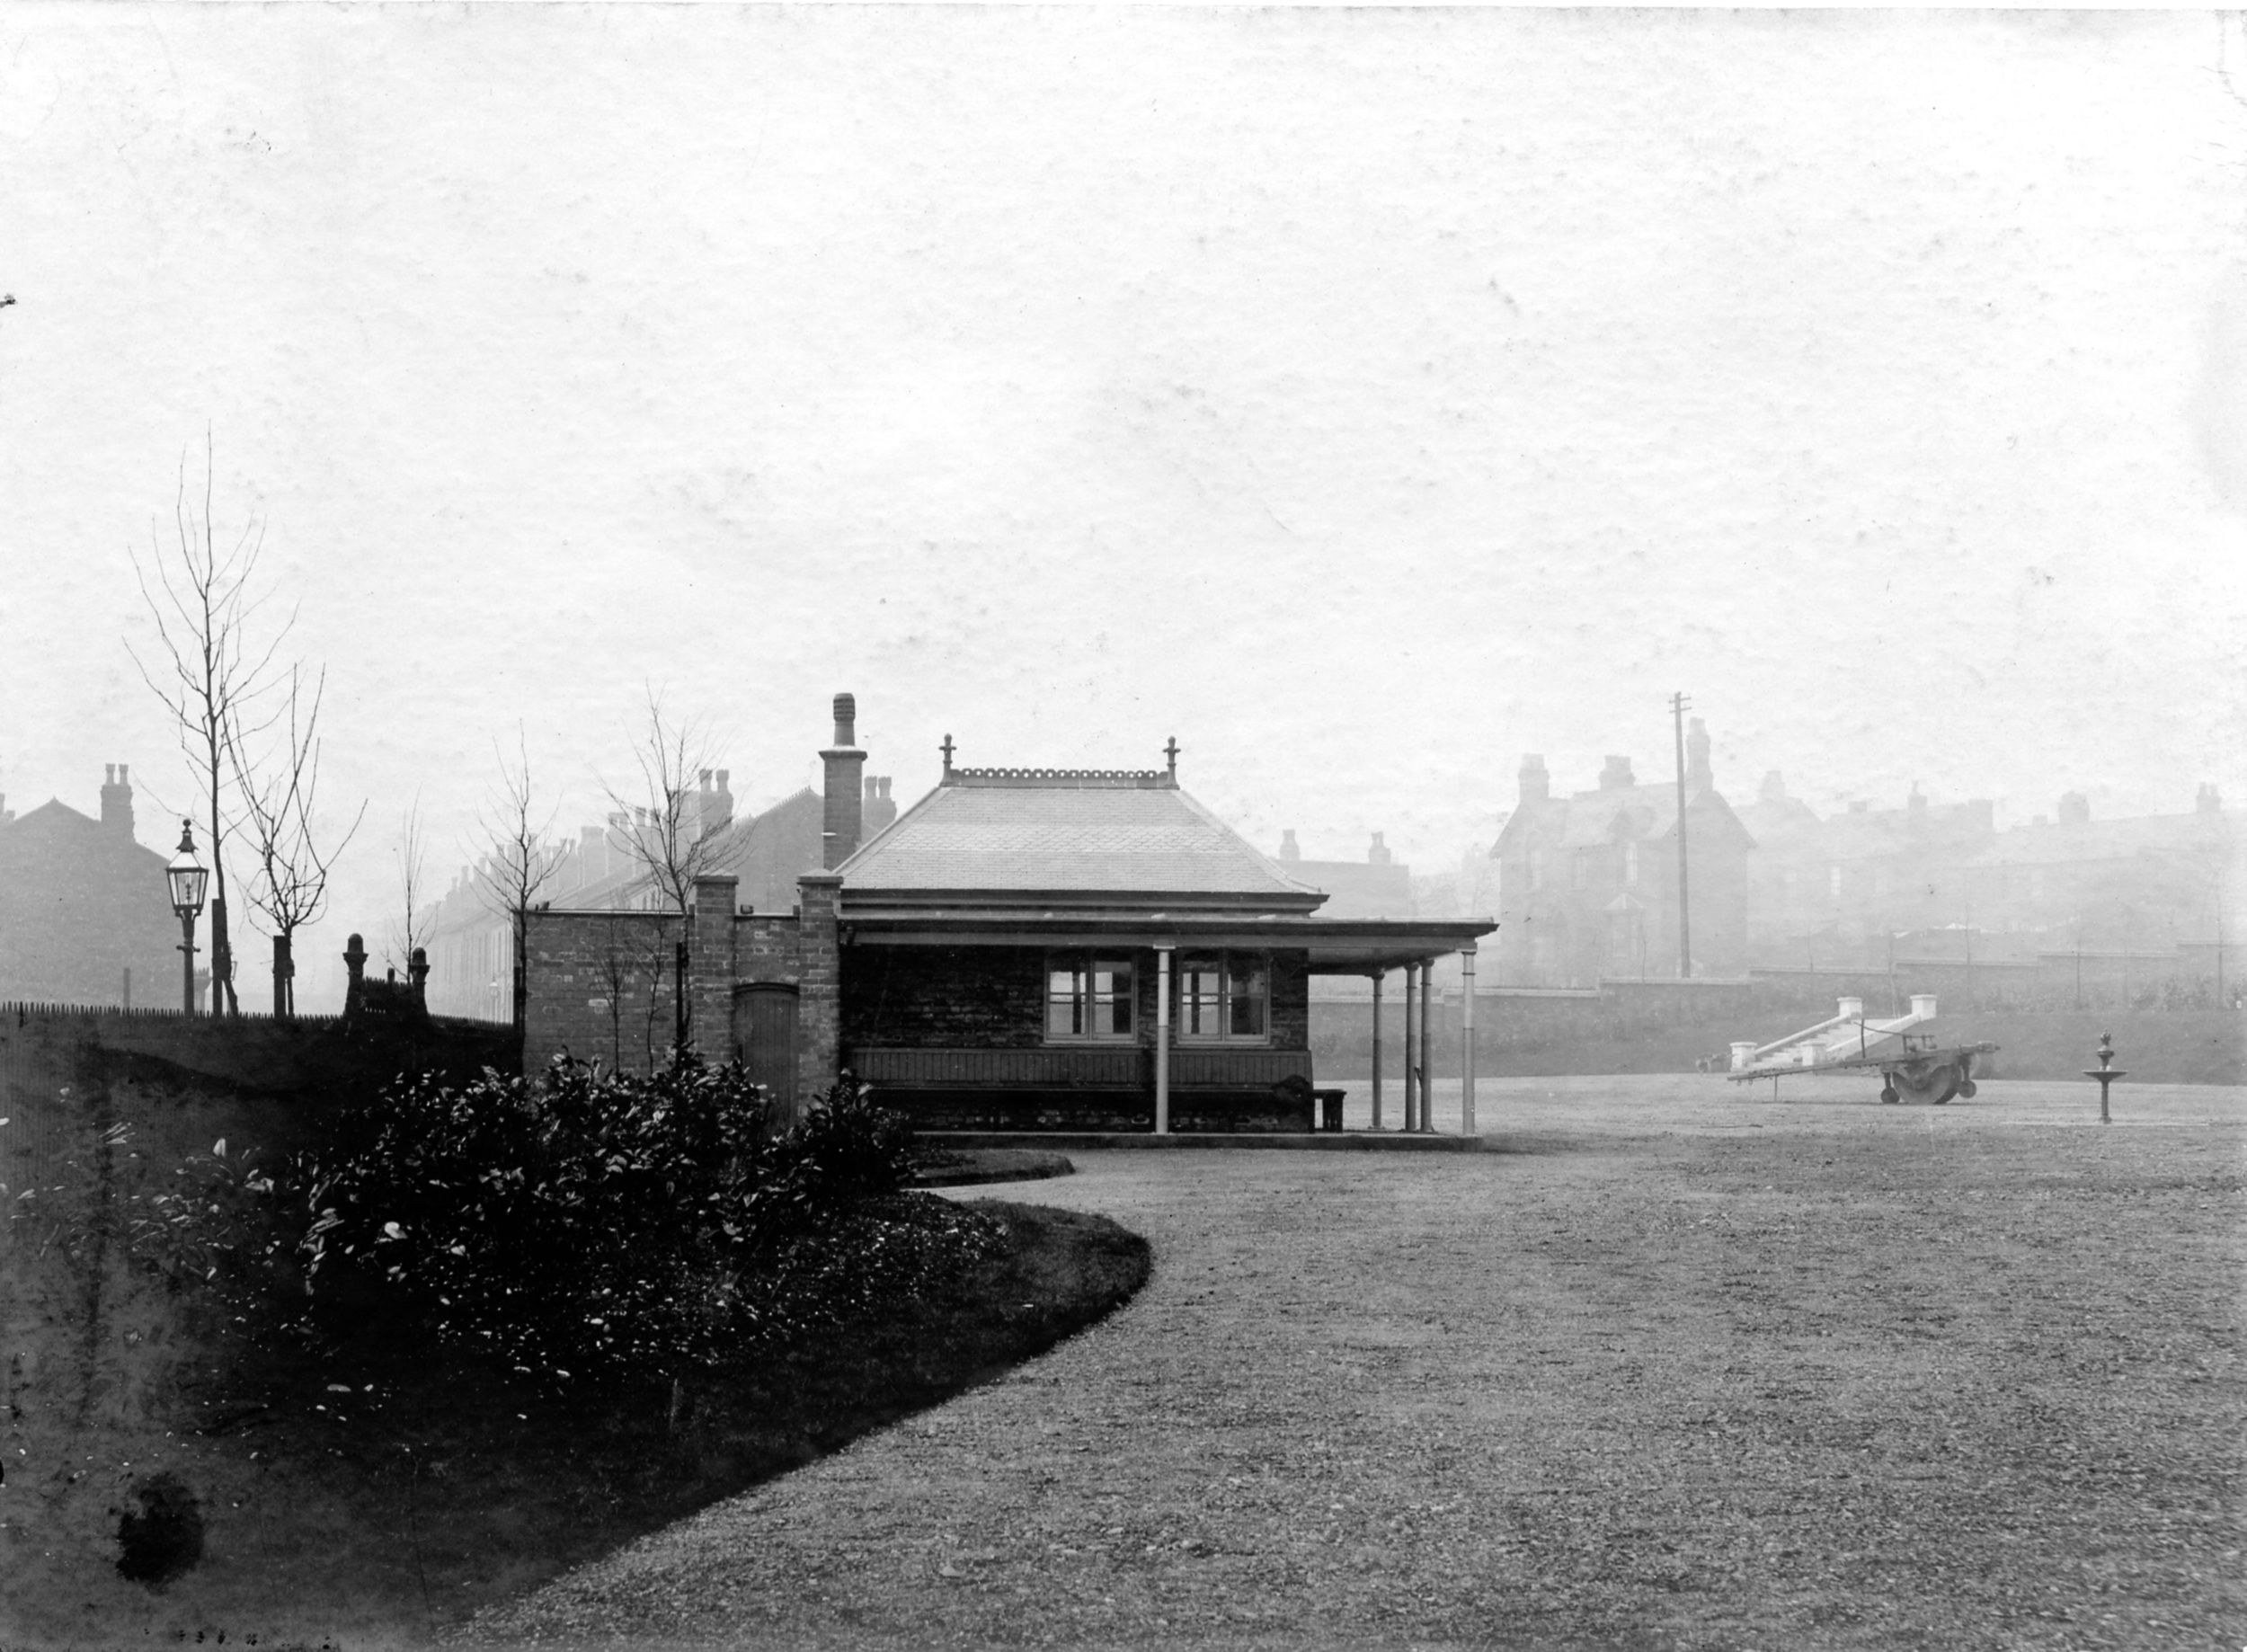 THE REC 1909 at the entrance the low building was the Park Keepers Hut with seating around outside, with a Gents lavatory one side and a Ladies on the other. Steps to the bowling lawn on the right towards the back. Houses along Musgrave Road on the left and Talbot Street on the right.